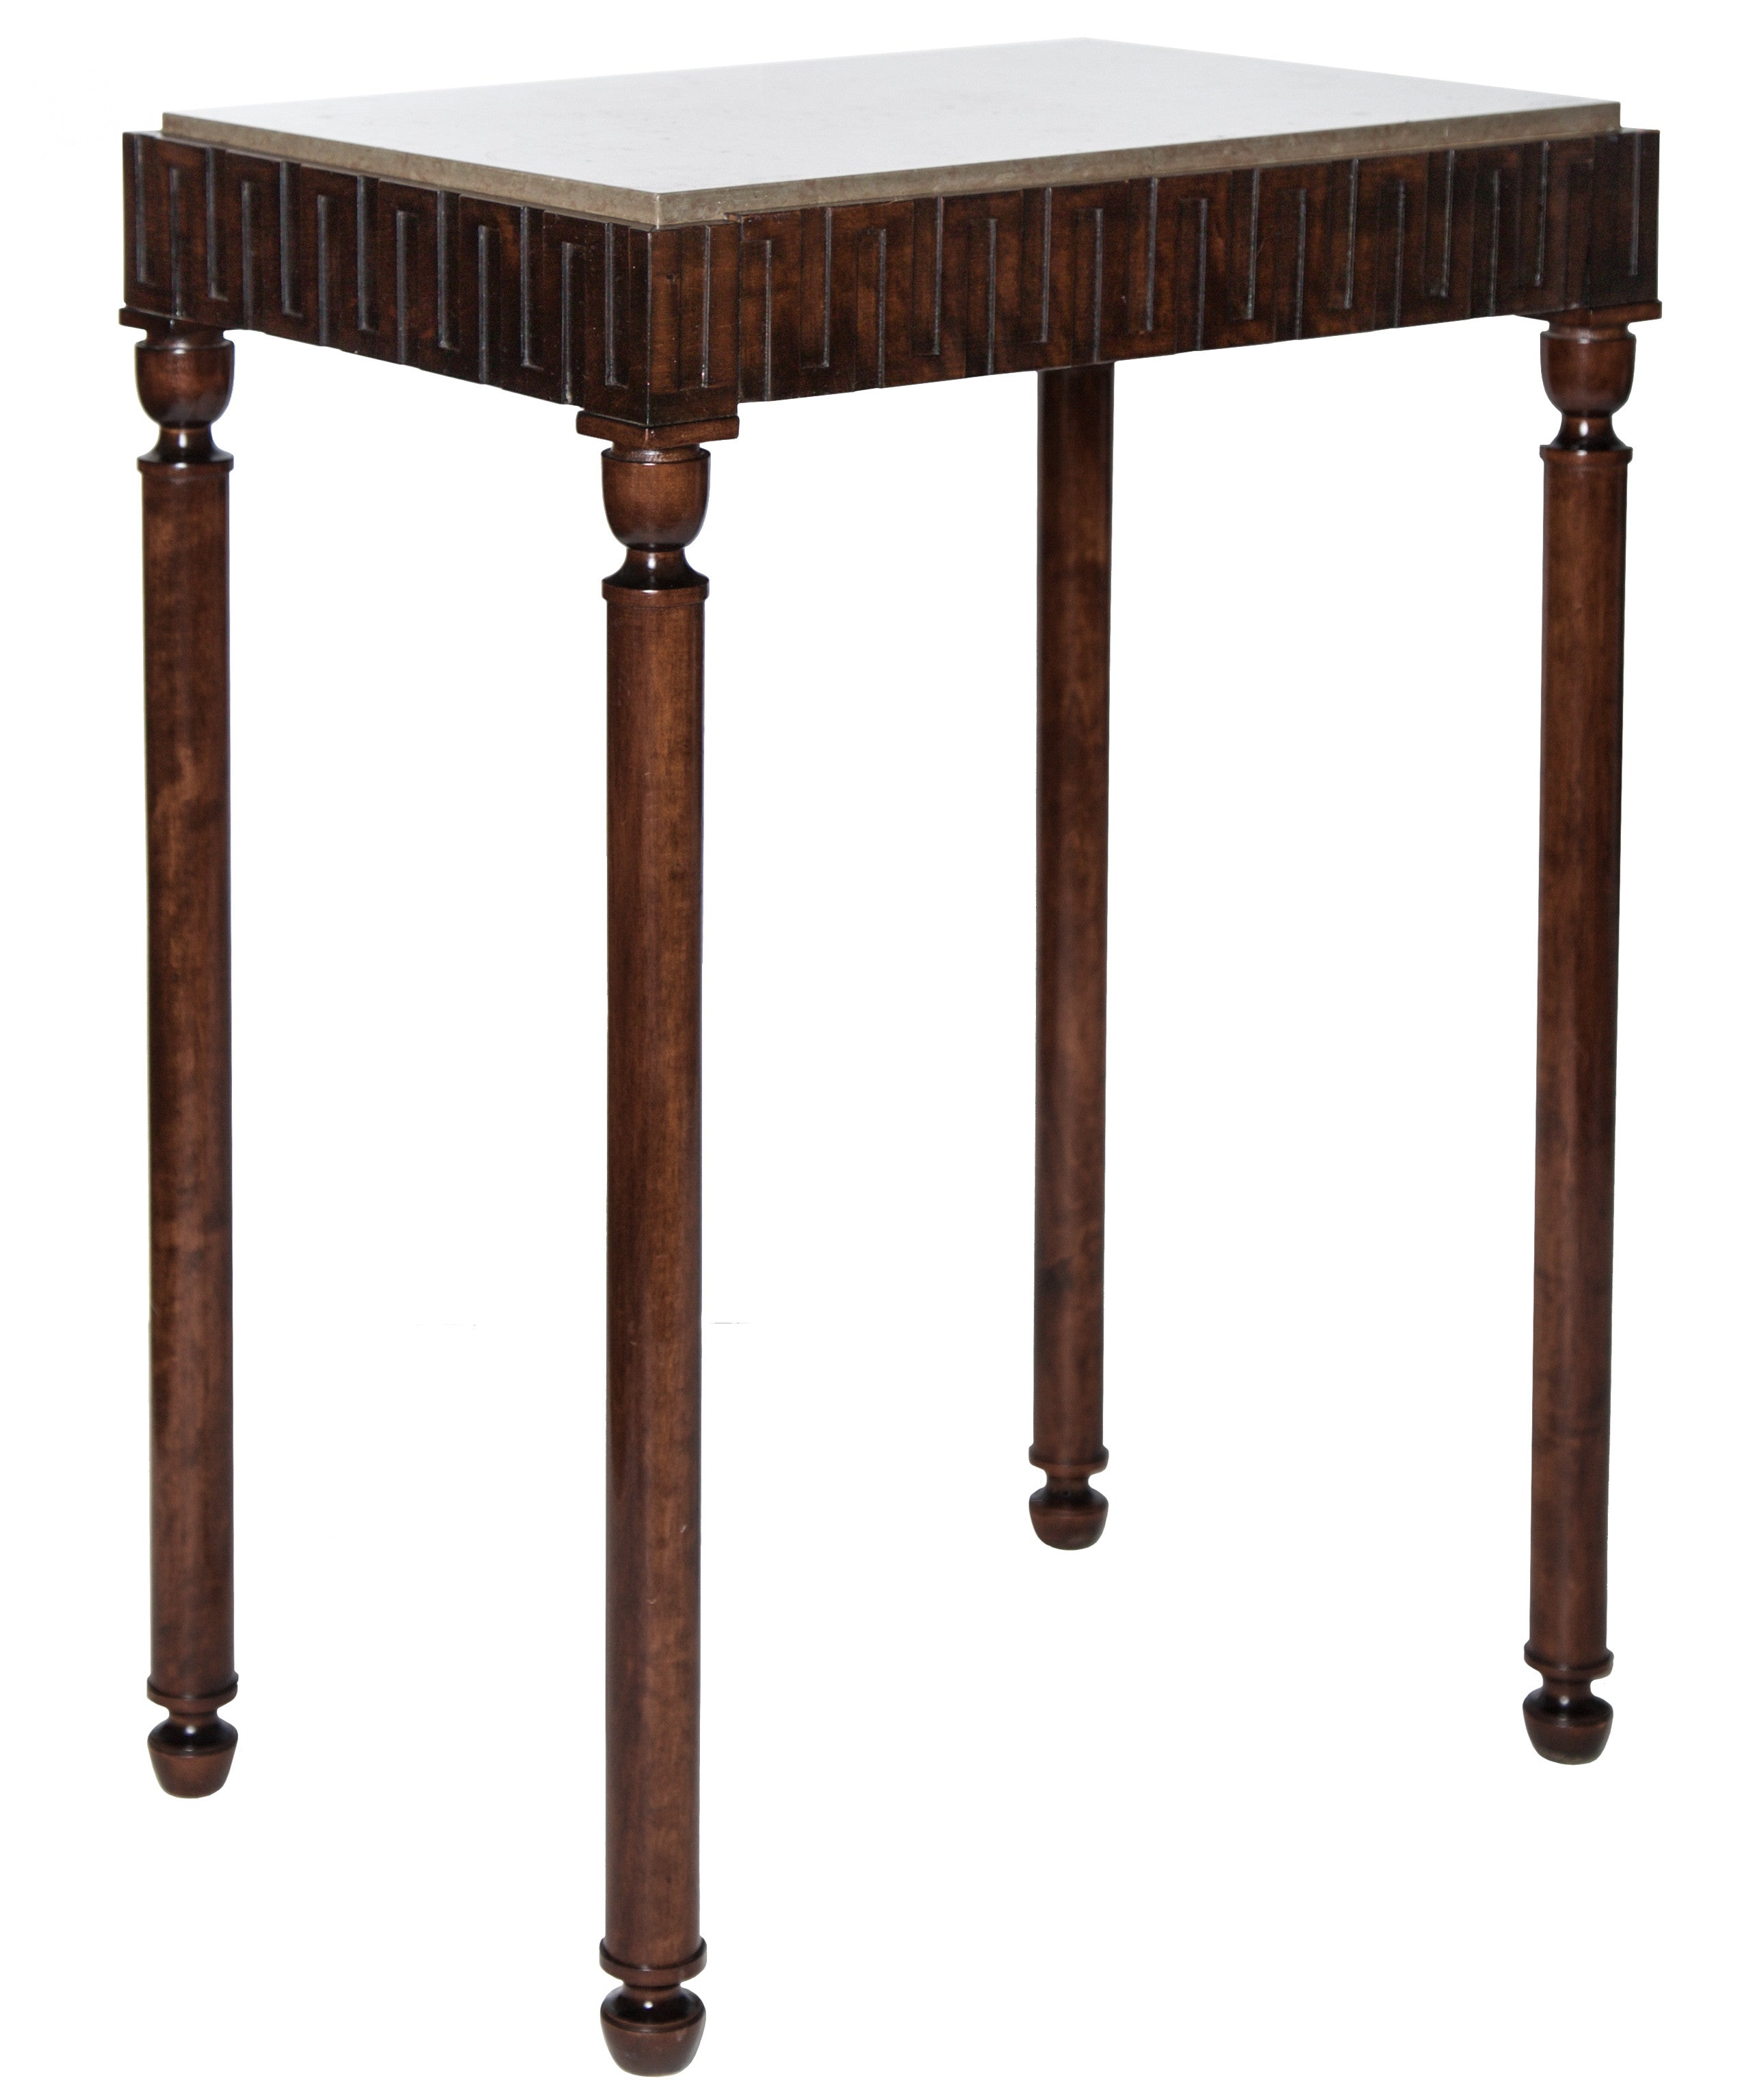 Axel Einar Hjorth Coolidge Console Table with Marble Top, 1929 - The Exchange Int